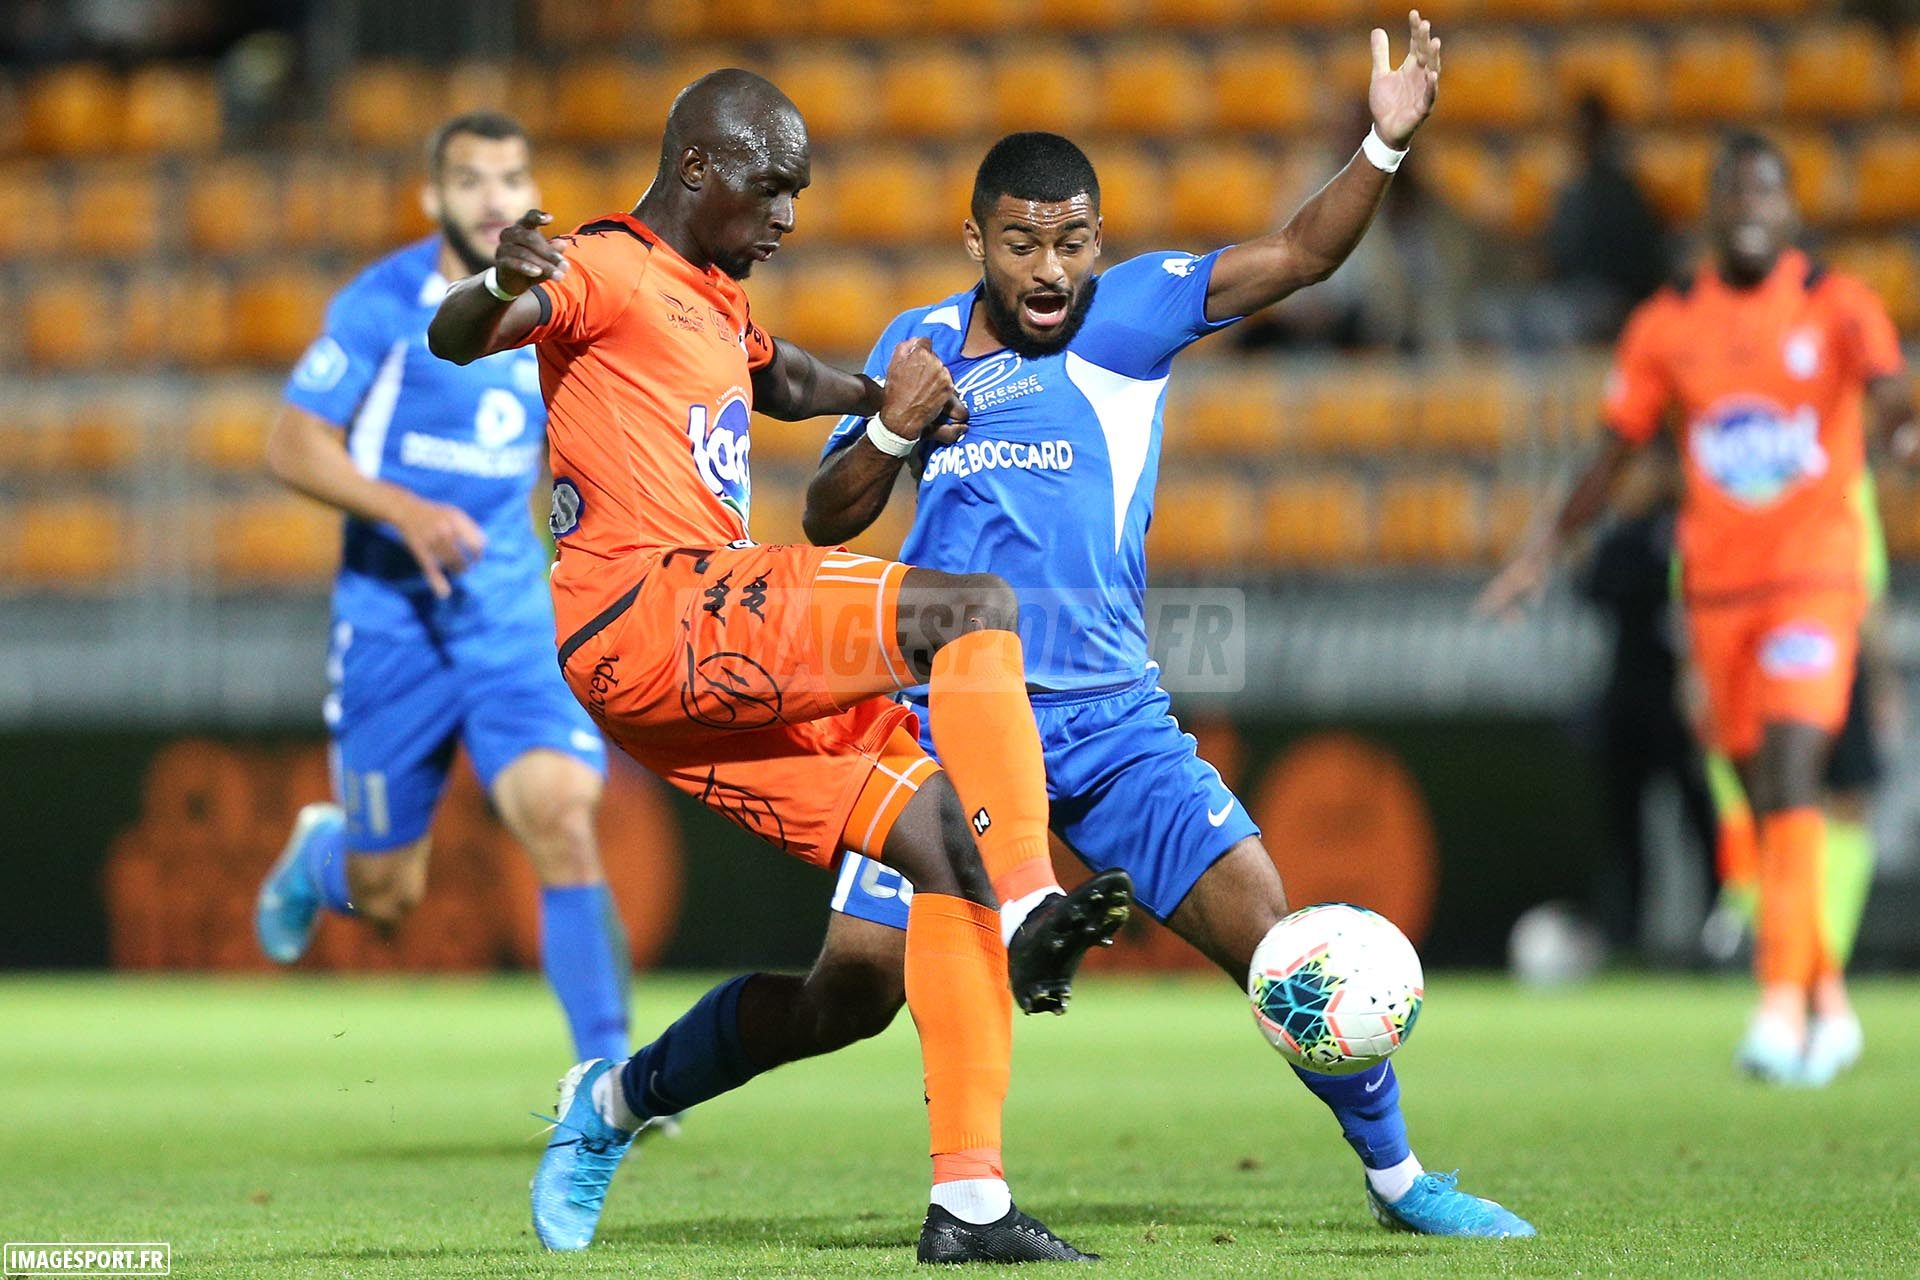 national-stade-lavallois-fbbp01-2019-2020_10